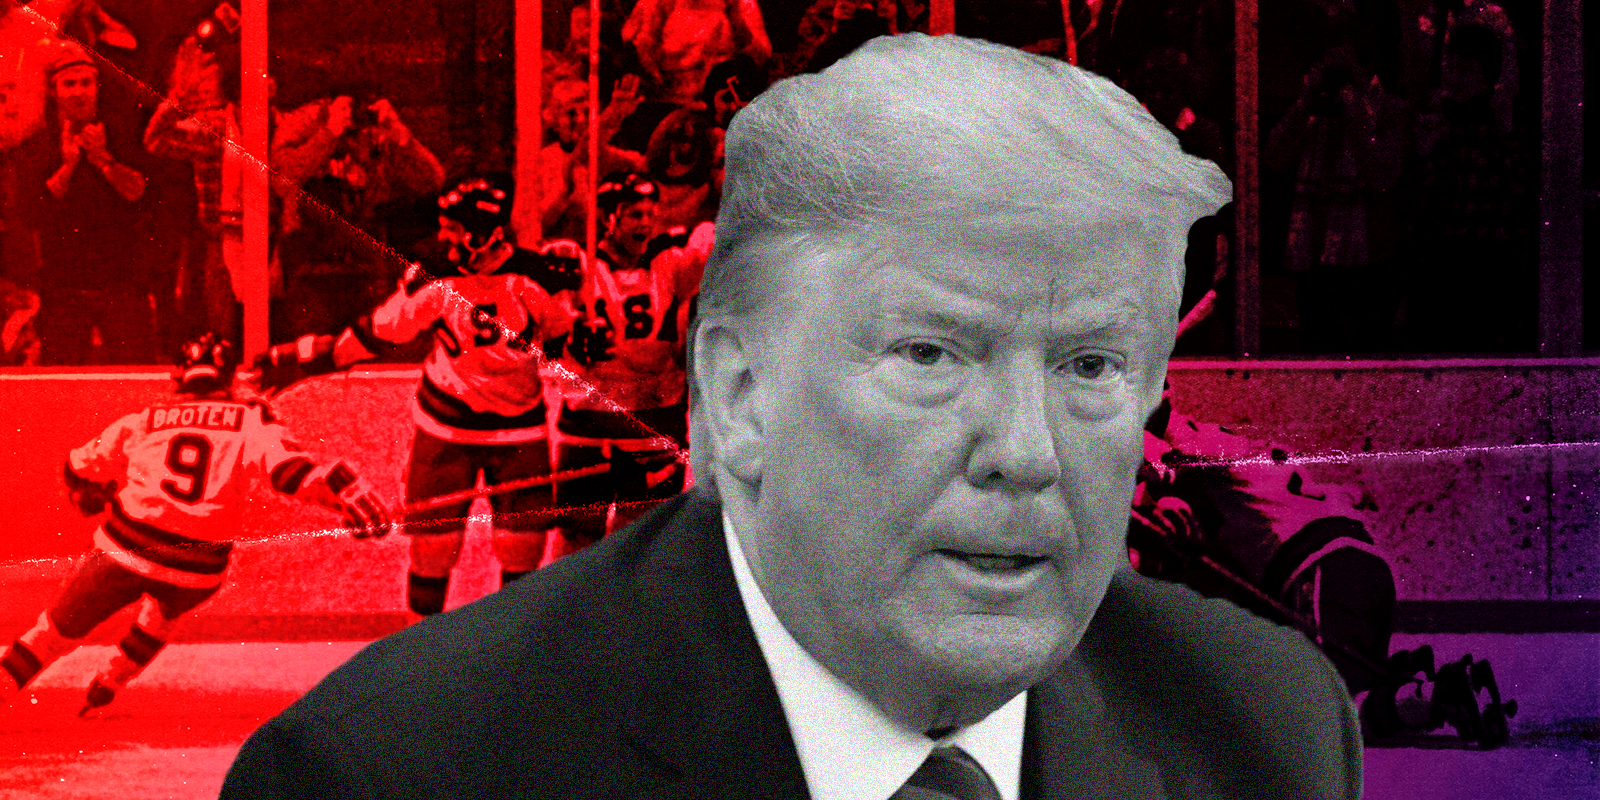 Journalist shames Miracle on Ice hockey team for supporting Trump